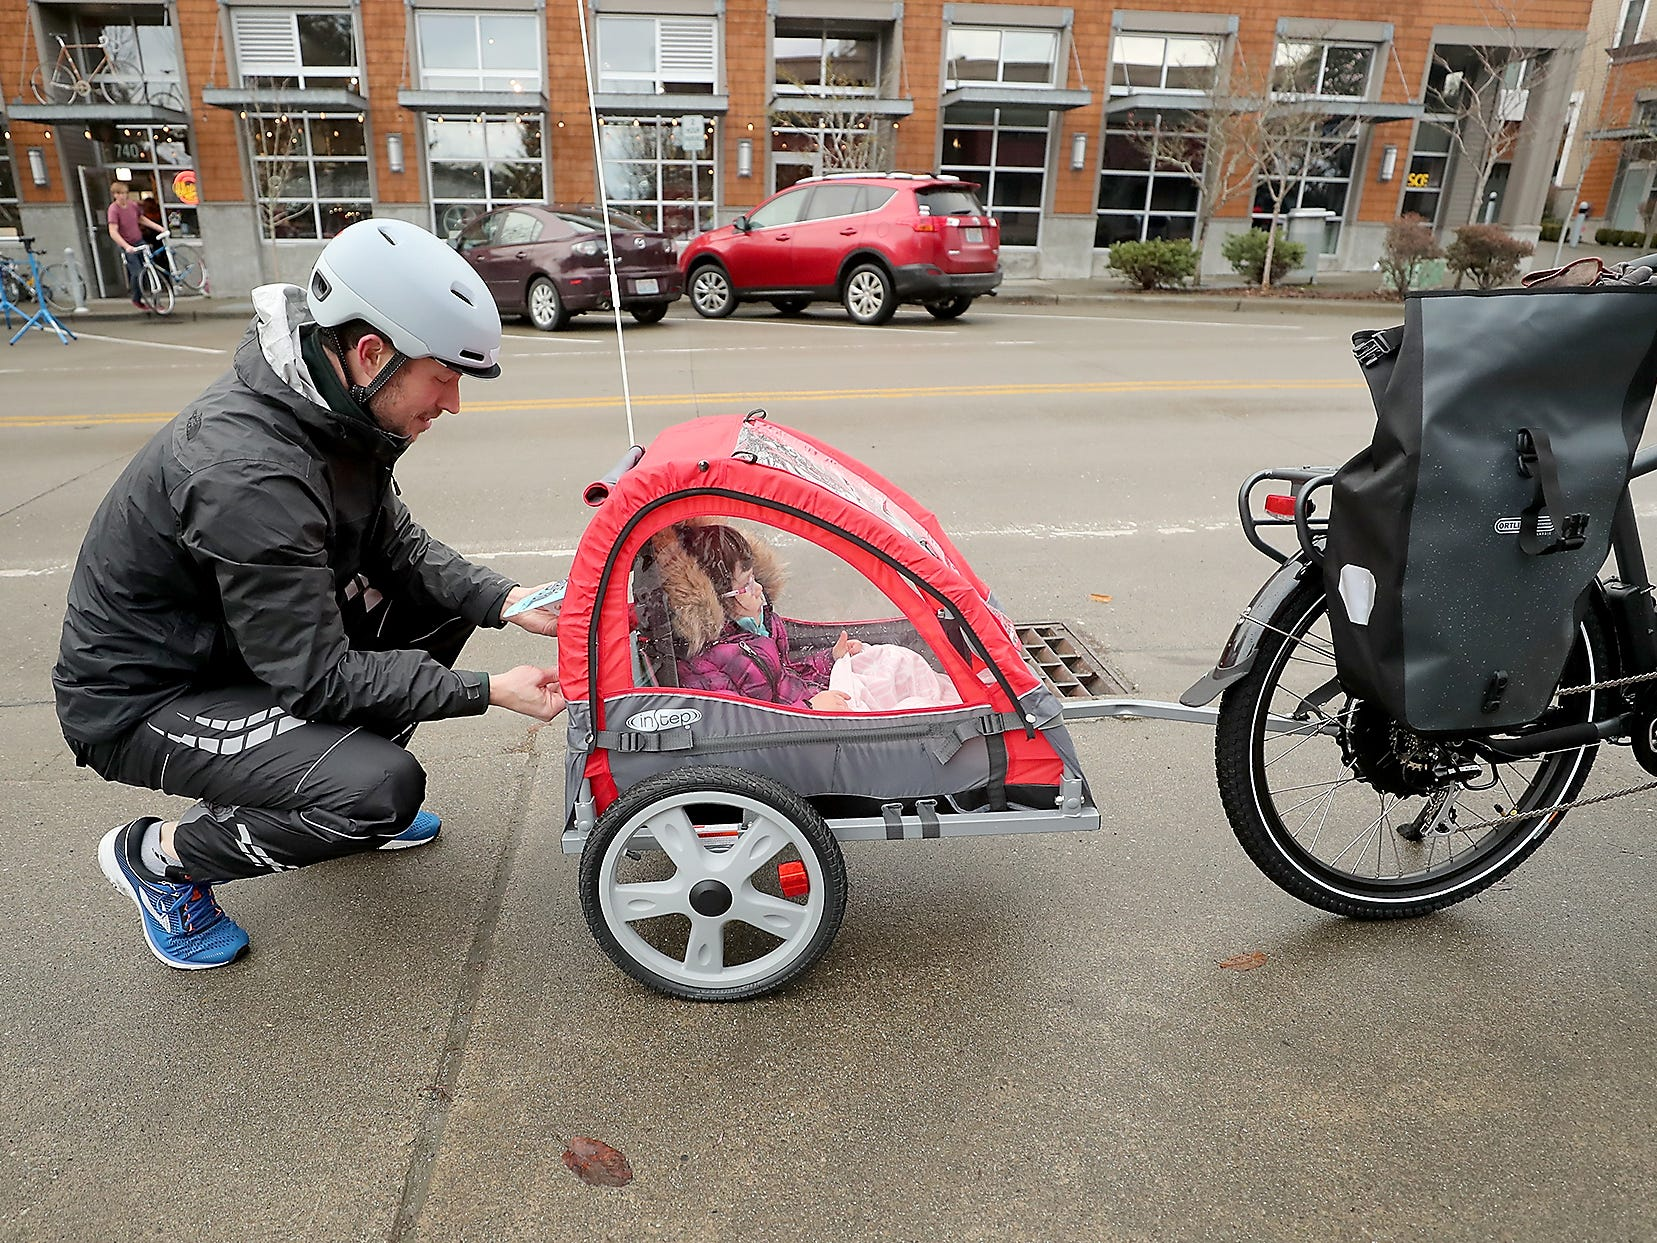 Jonathan Burr, of Bainbridge Island, grabs a pair of gloves out of the trunk for daughter Harper, 3, as they begin Cascade Bicycle Club's annual Chilly Hilly ride around Bainbridge Island on Sunday, February 24, 2019.